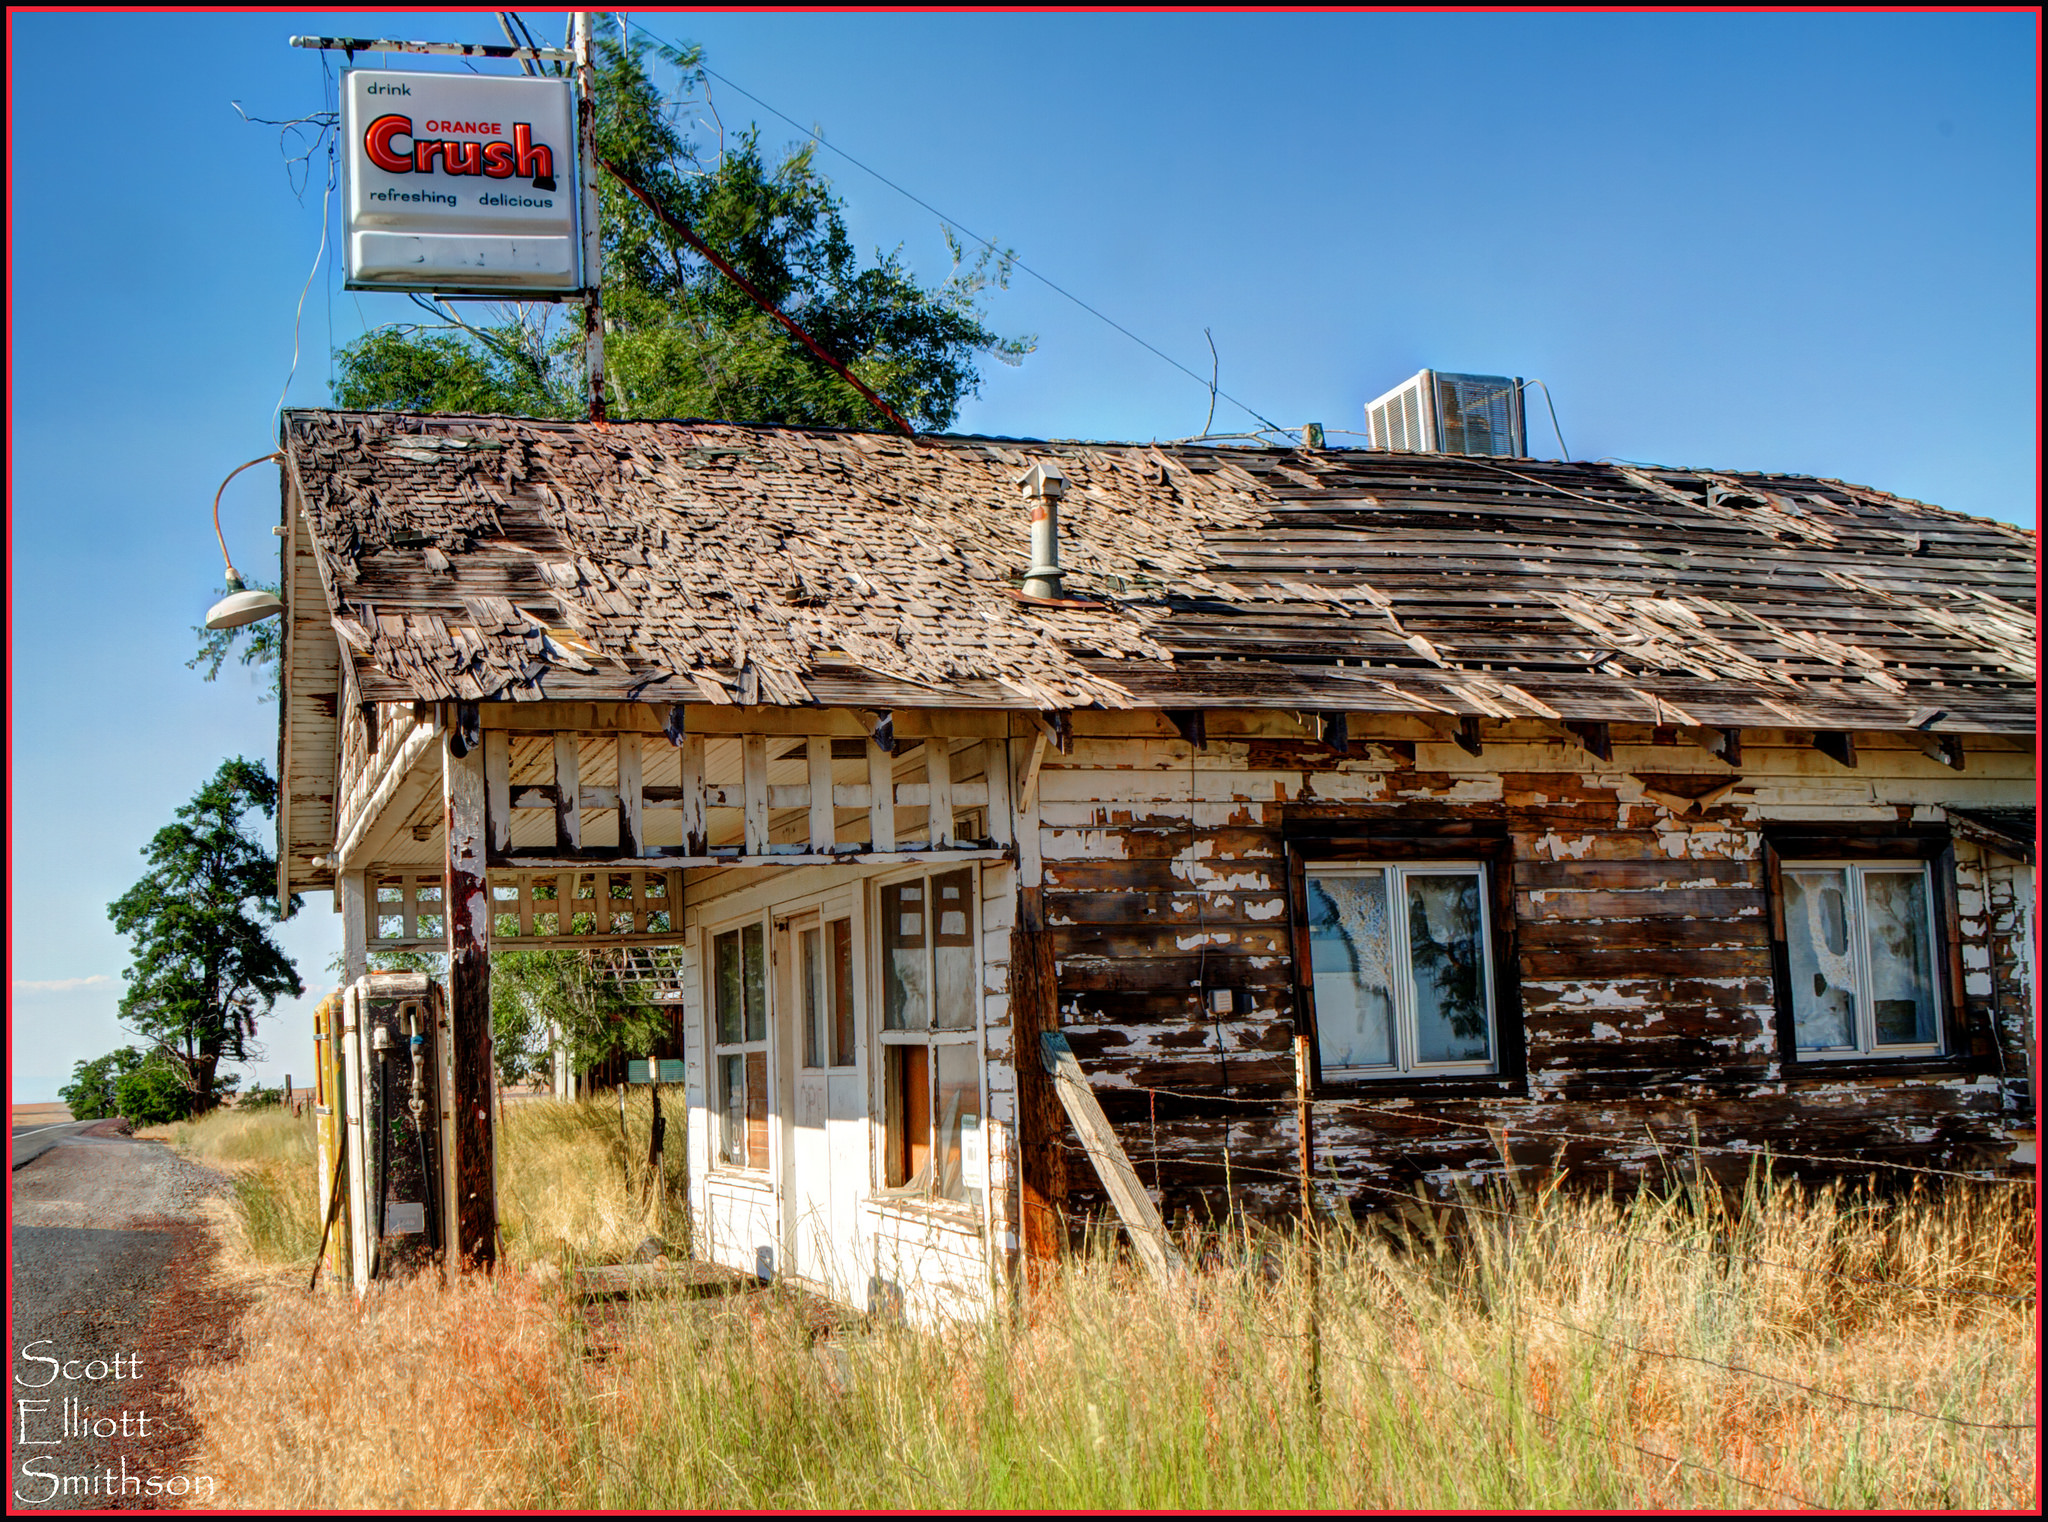 24 Abandoned Places in Oregon That Are Downright Awesome